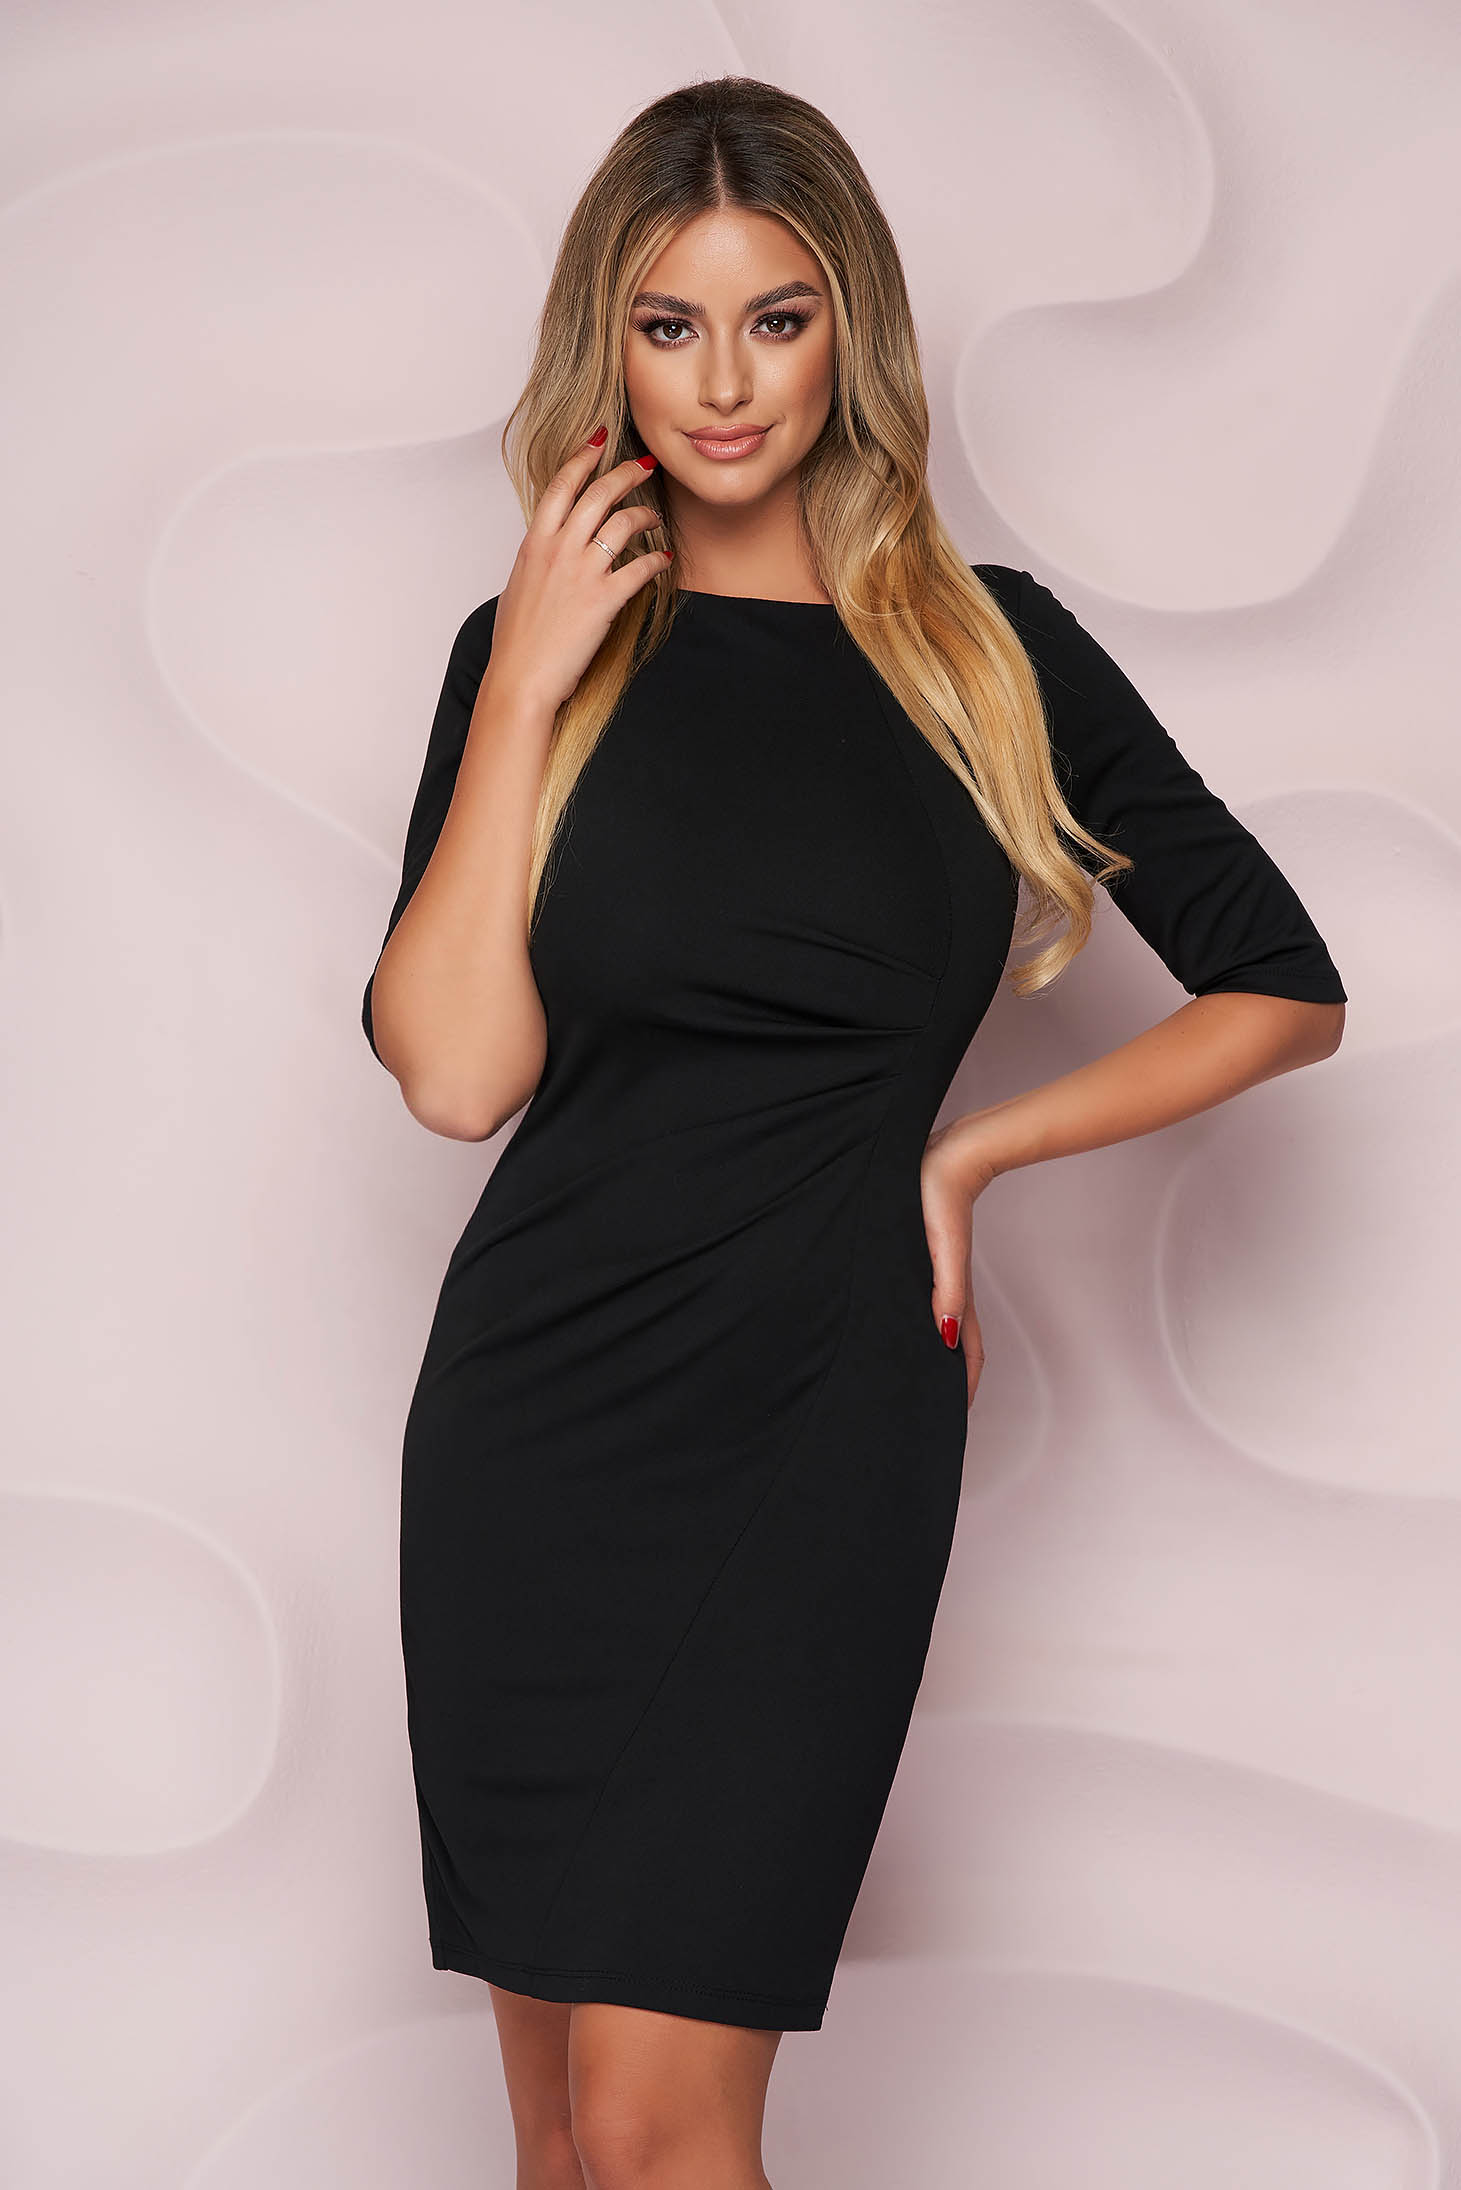 Black dress pencil midi office thin fabric from elastic fabric with 3/4 sleeves